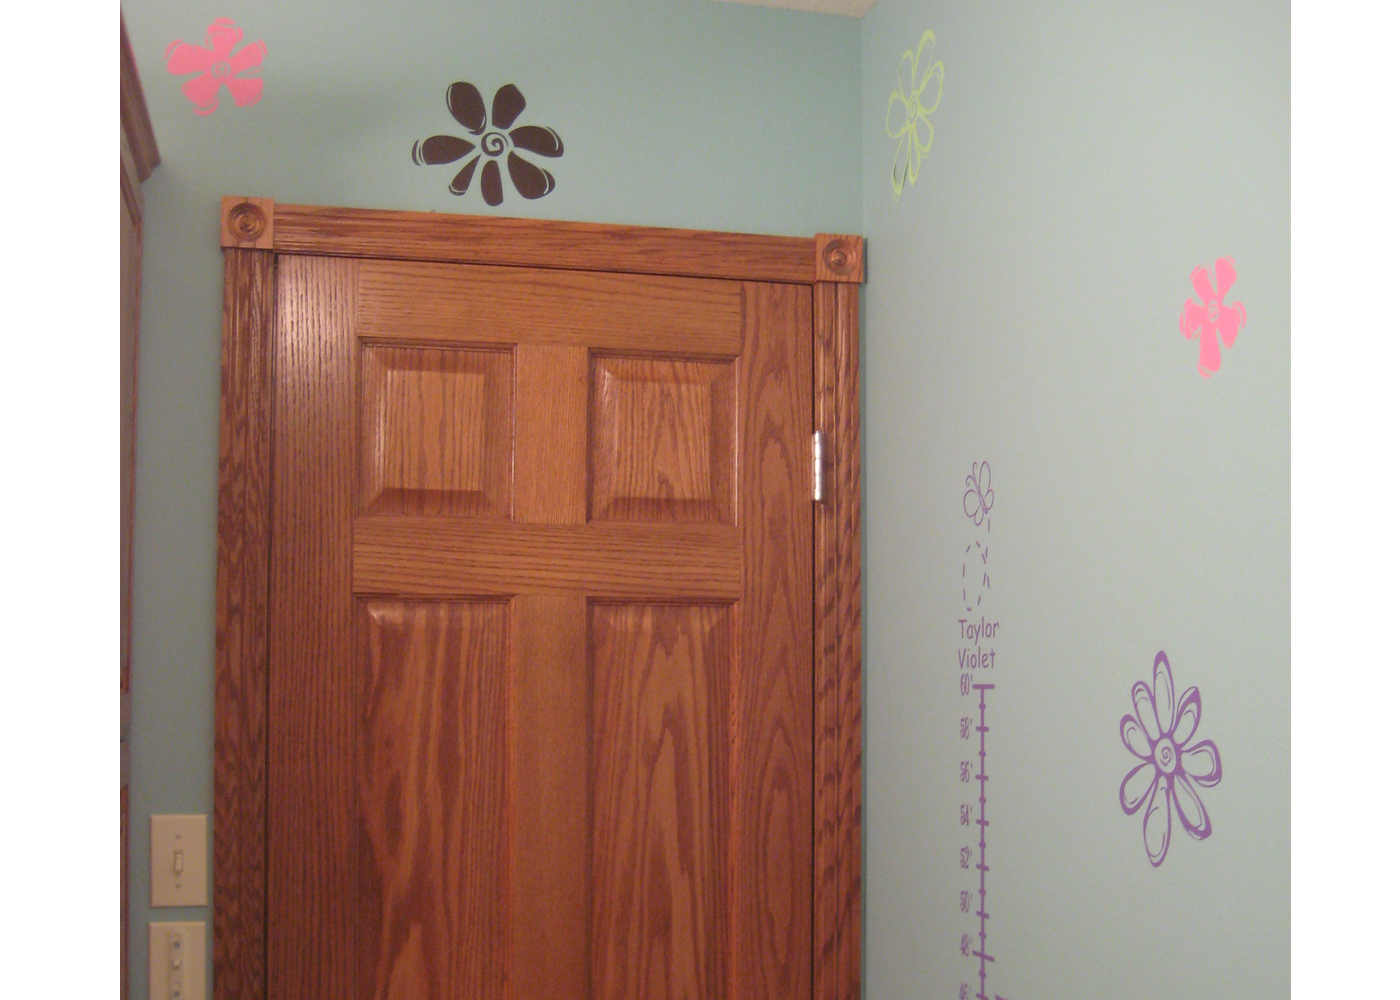 flower-wall-decal-in-bathroom.jpg